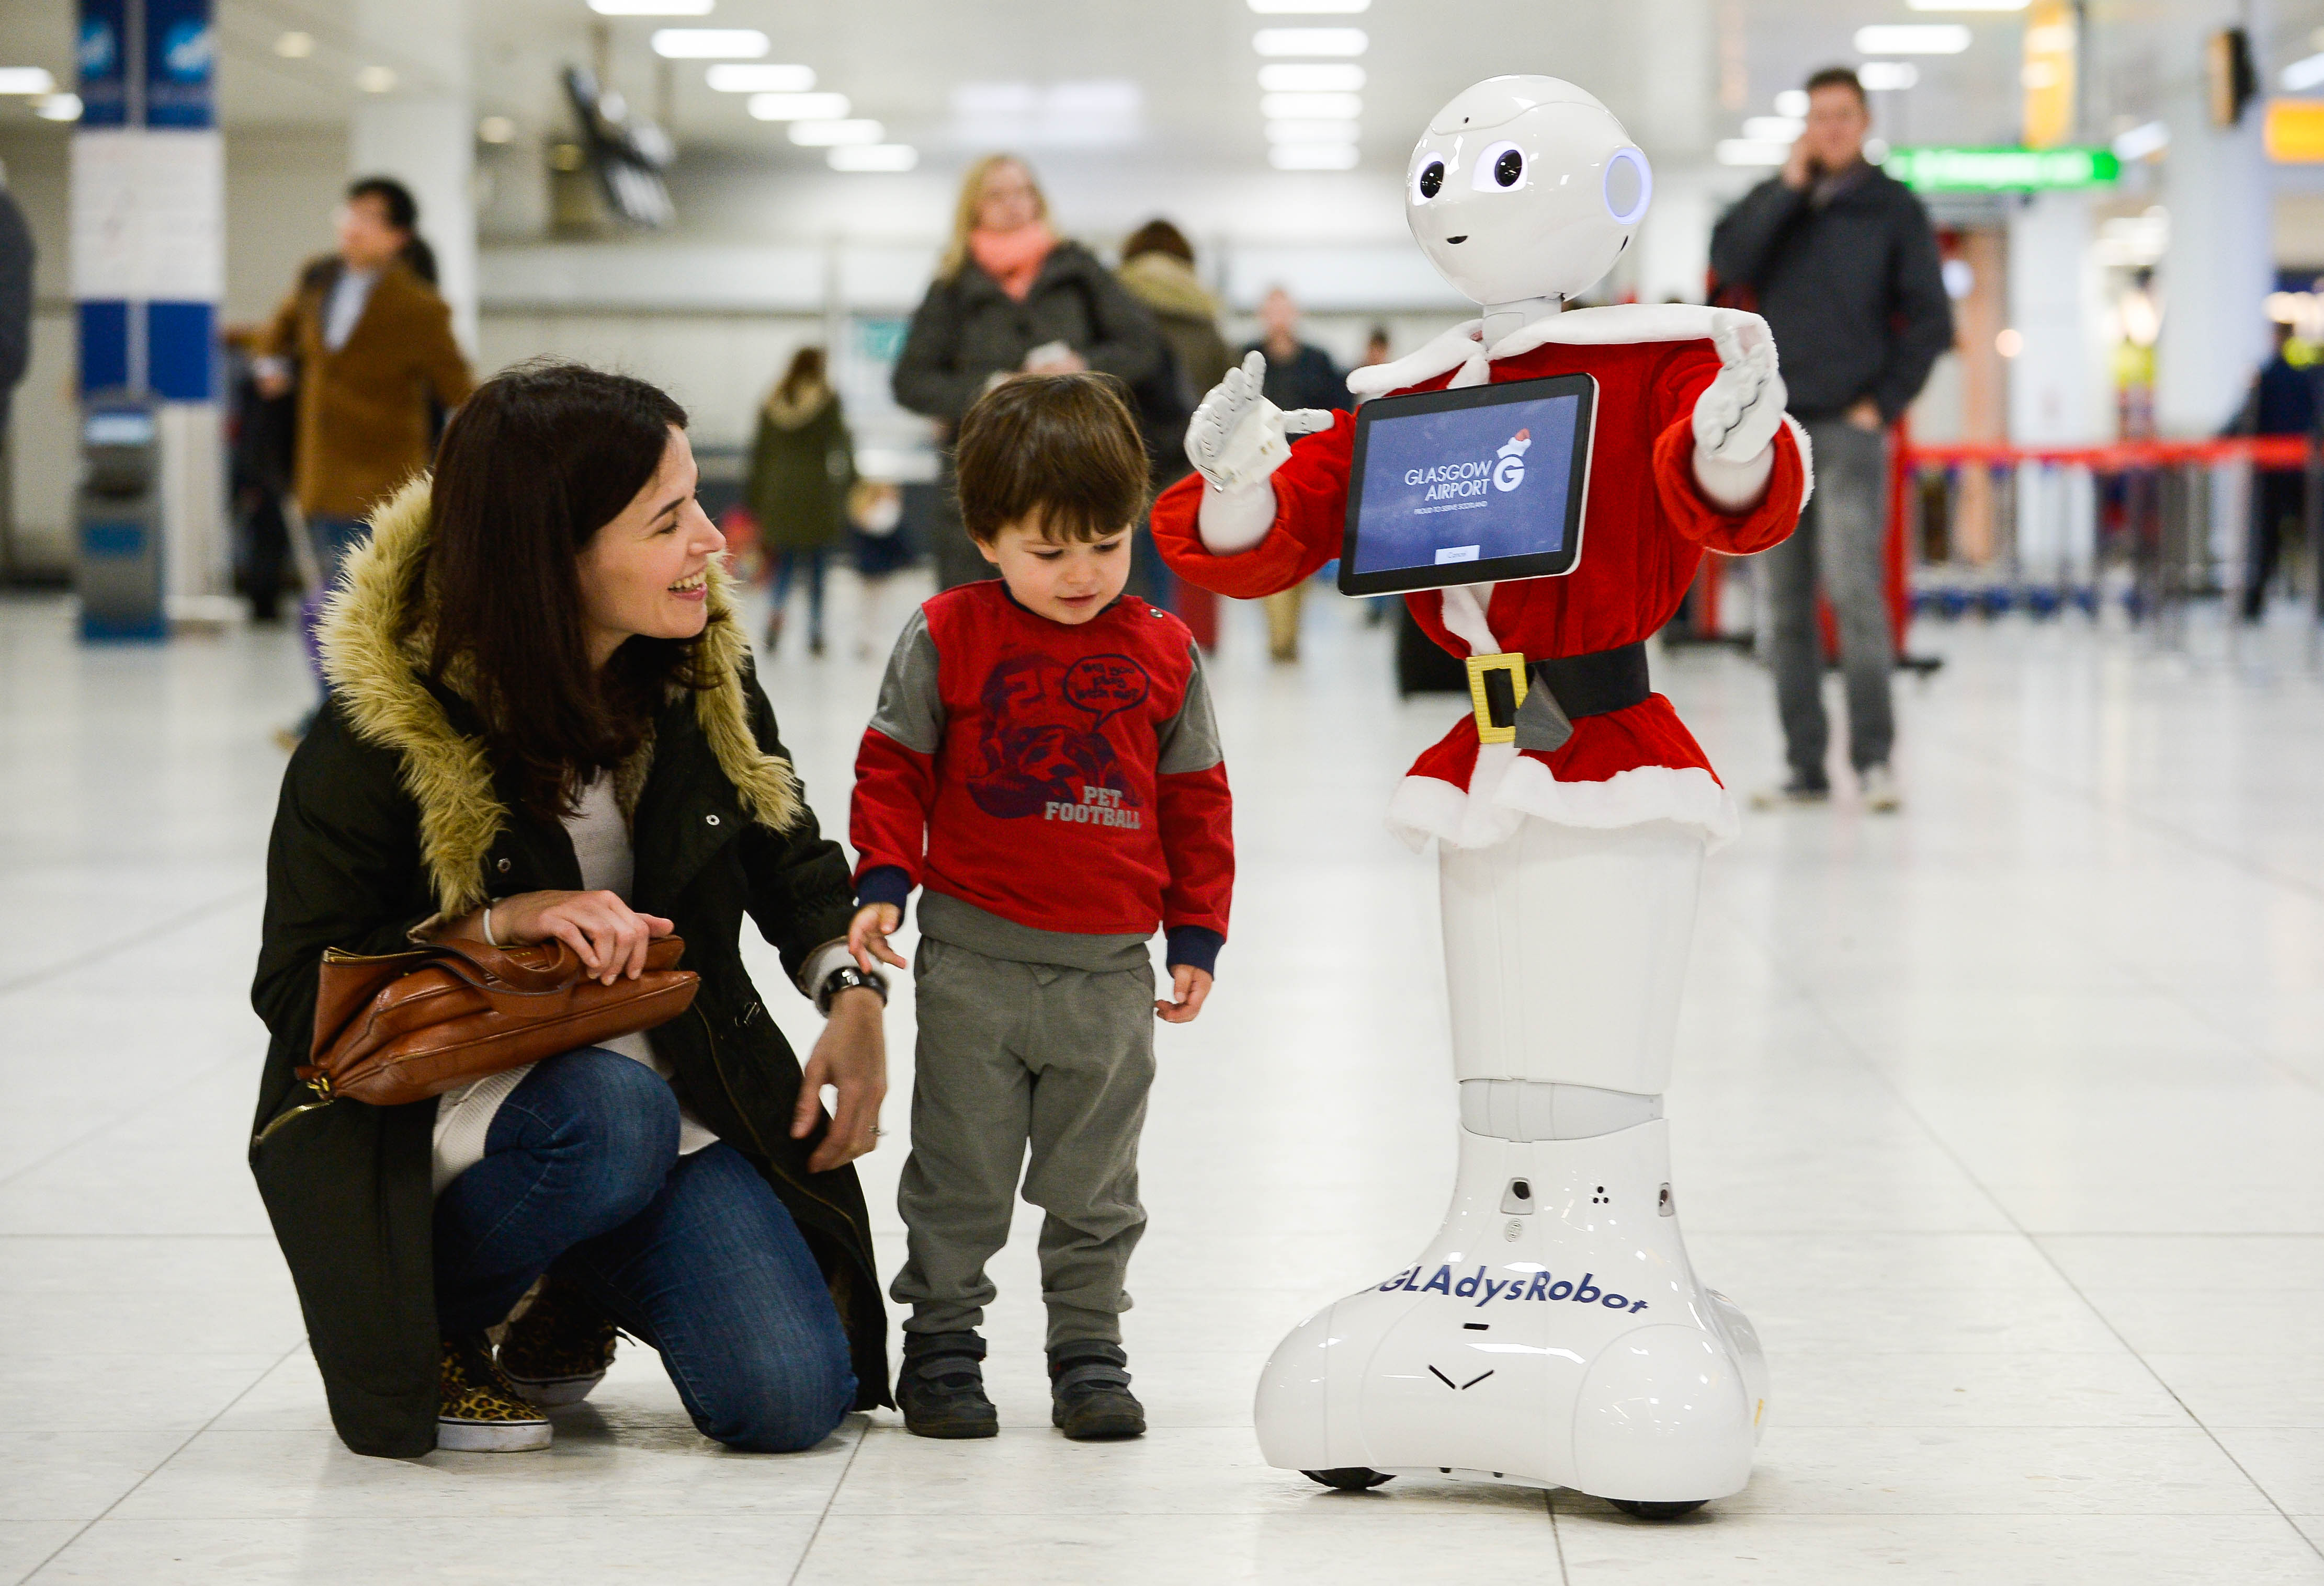 Glasgow has proved once again it has an AI for technology with todayÕs introduction of GLAdys Ð the UKÕs first humanoid robot airport ambassador. State-of- the-art GLAdys, whose name comes from GlasgowÕs International Air Transport Association (IATA) code, will be based in the main departures area and has initially been programmed to entertain passengers of all ages as they pass through the airport. Passengers check out GLAdys